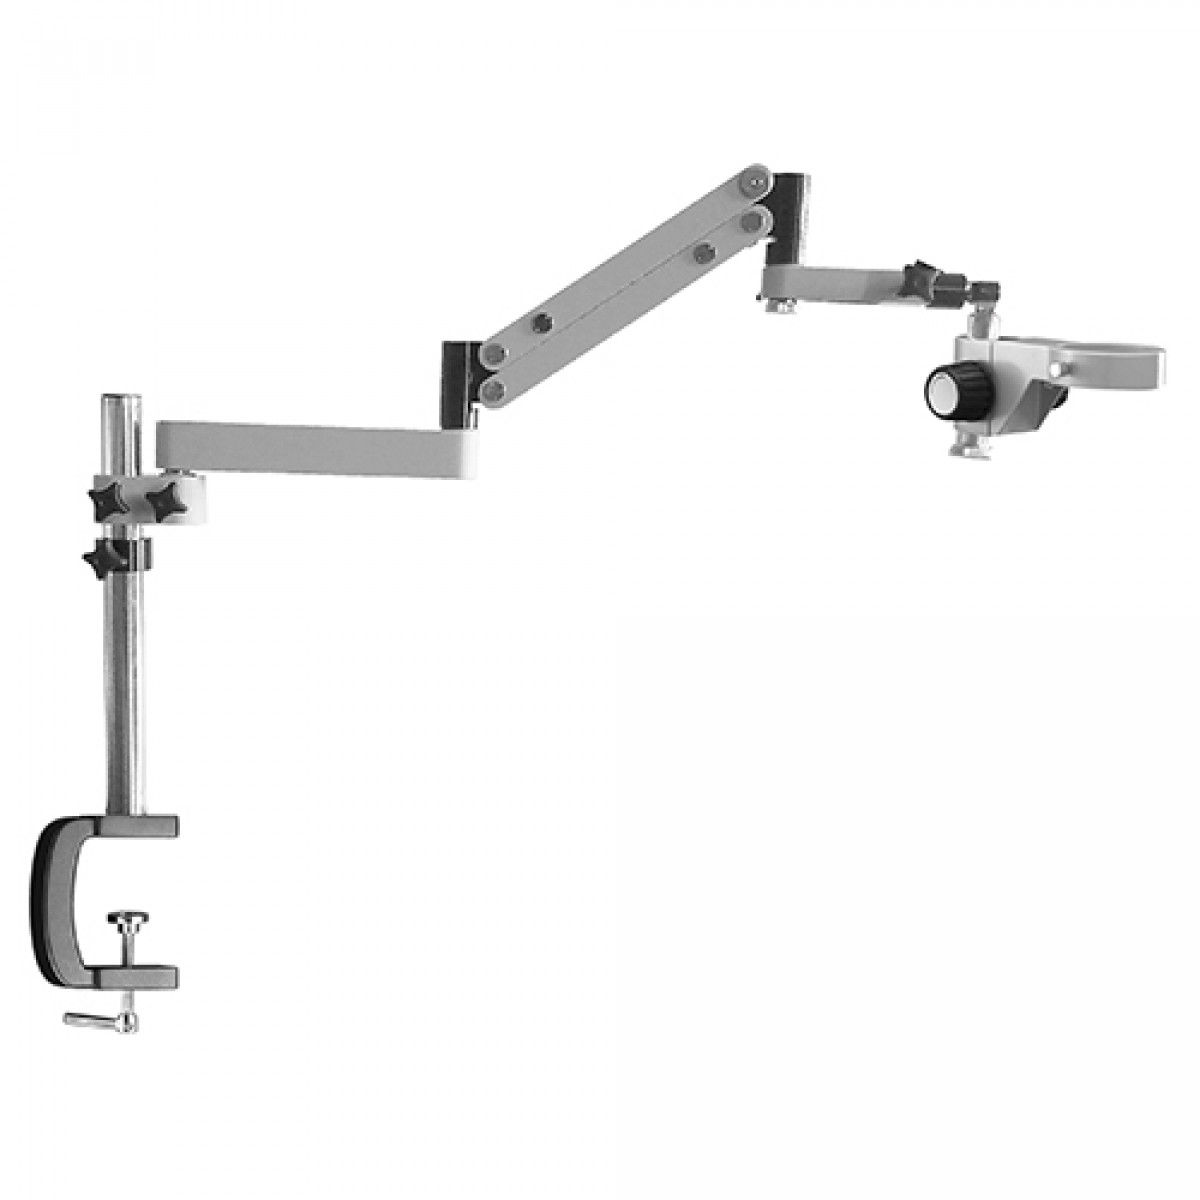 Articulating Arm With Vertical Extension